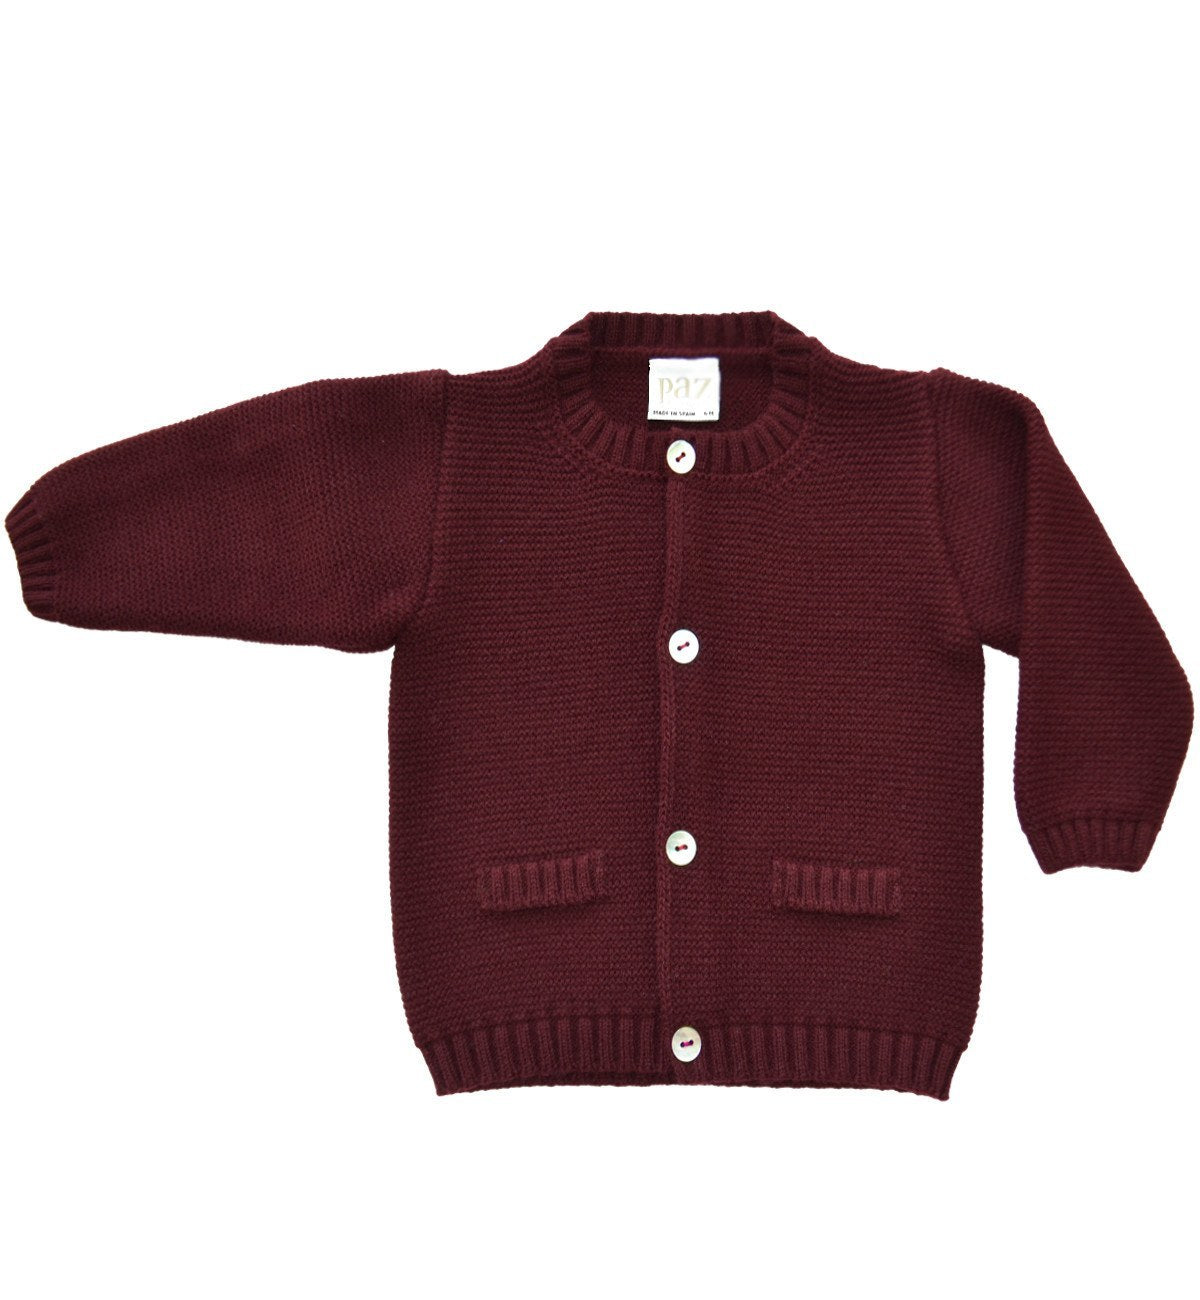 Spanish baby clothes | baby Cardigan & Coat | Burgundy cardigan |babymaC  - 1